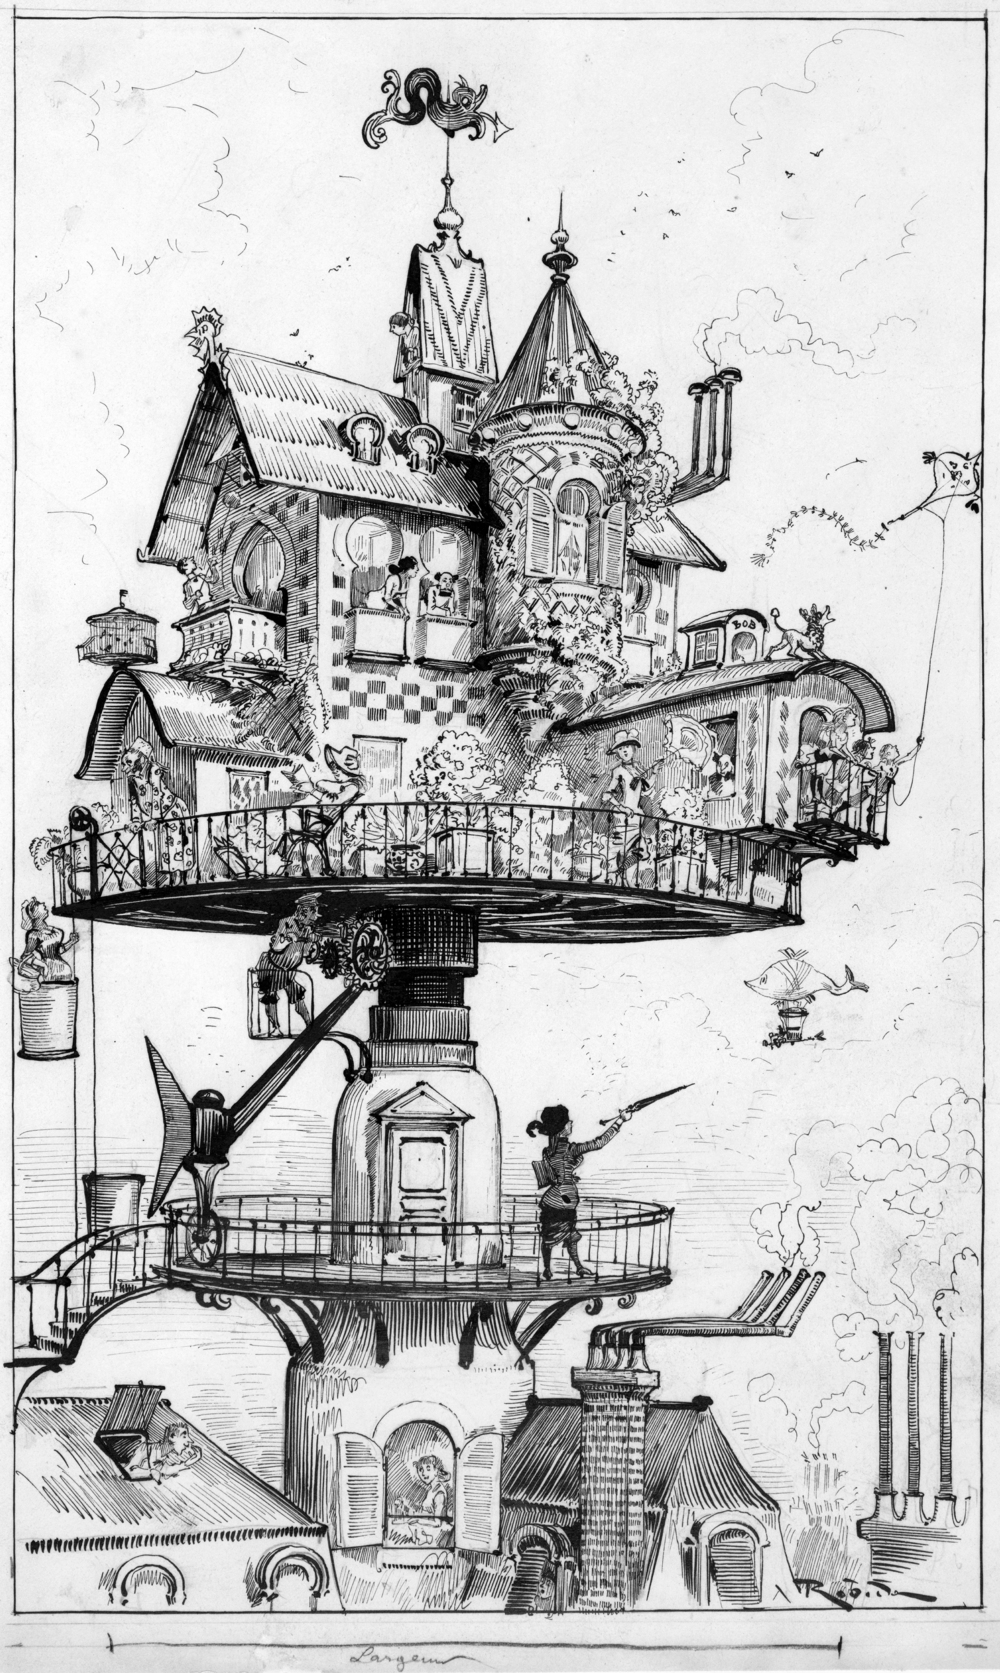 """Maison tournante aérienne"" (aerial rotating house) by  Albert Robida    (ca. 1883)  . A drawing for his book   Le Vingtième Siècle  , a 19th century conception of life in the 20th century."